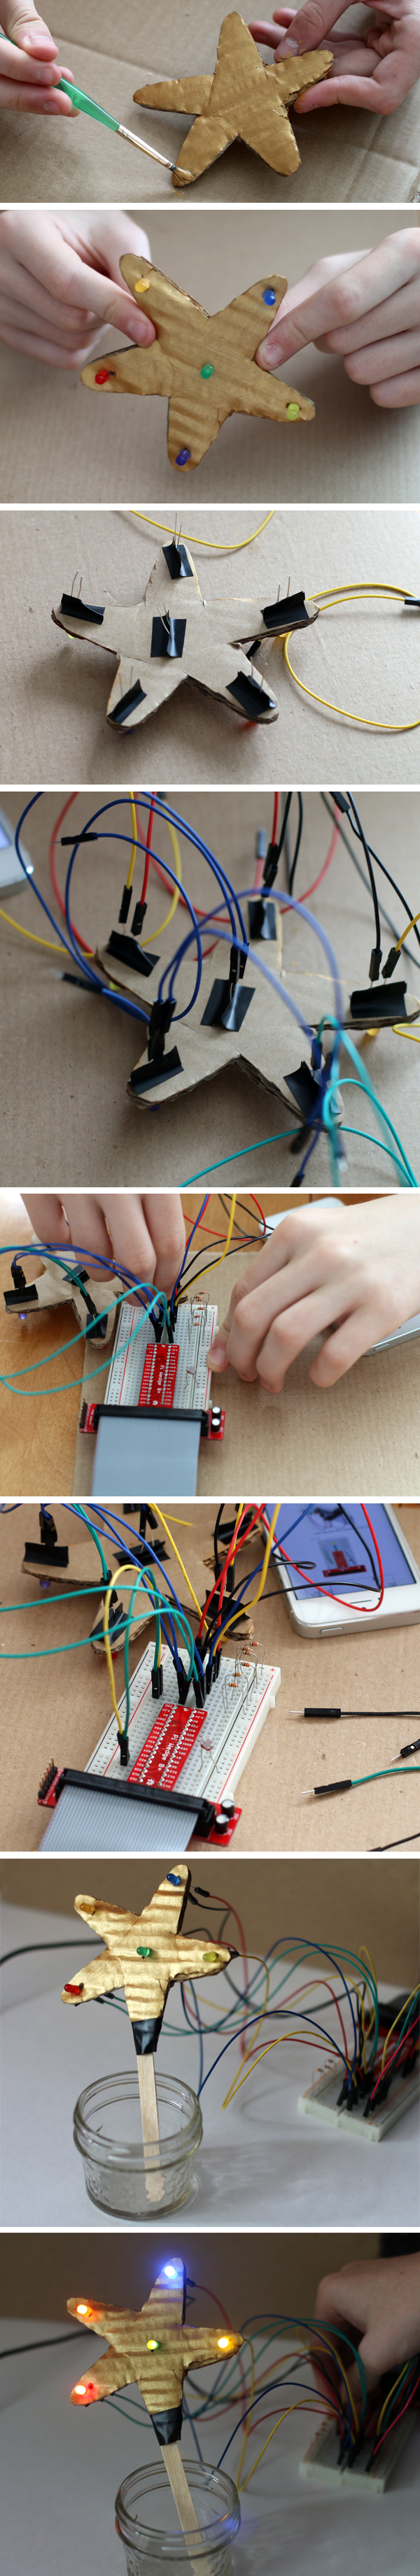 We got in the holiday spirit with Scratch and Raspberry Pi to light up a simple light-activated star!